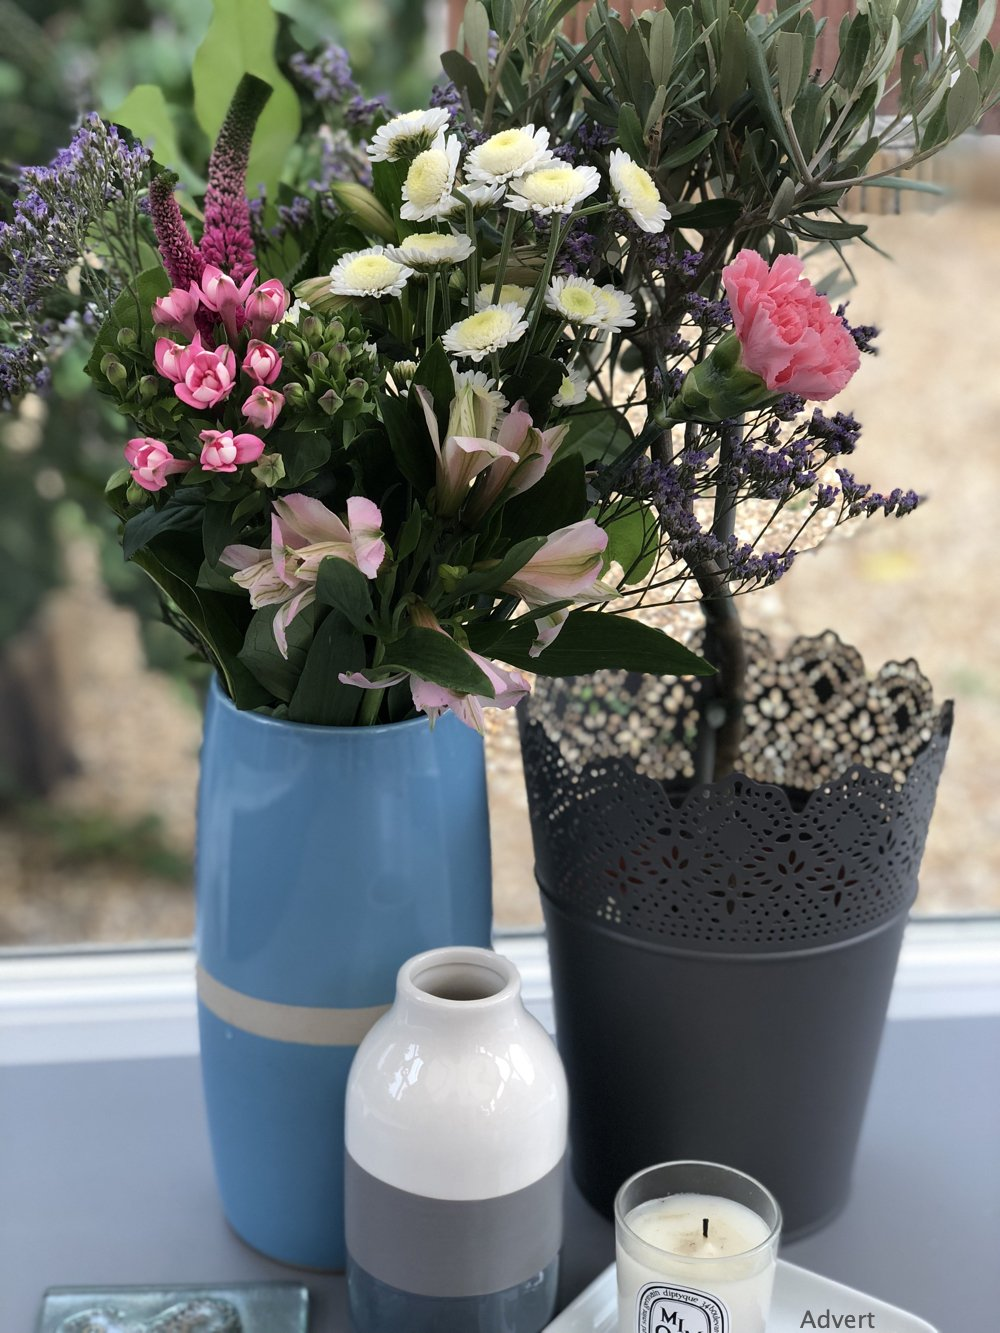 Bloom Magic flower bouquet wit roses, stock, herbs and freesia in a blue vase next to an olive tree